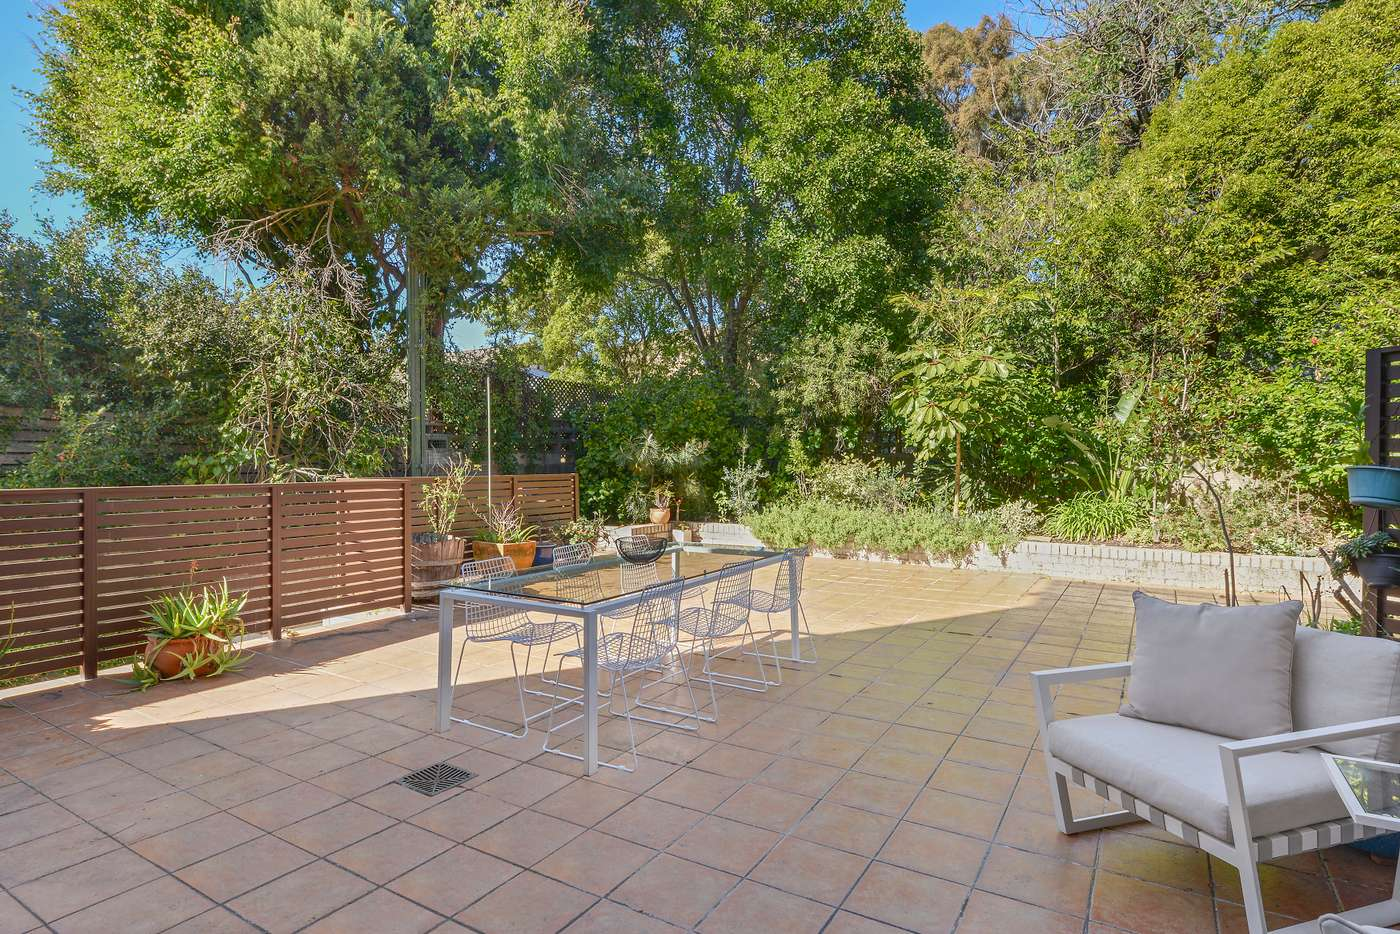 Main view of Homely apartment listing, 6/285 Bondi Road, Bondi NSW 2026